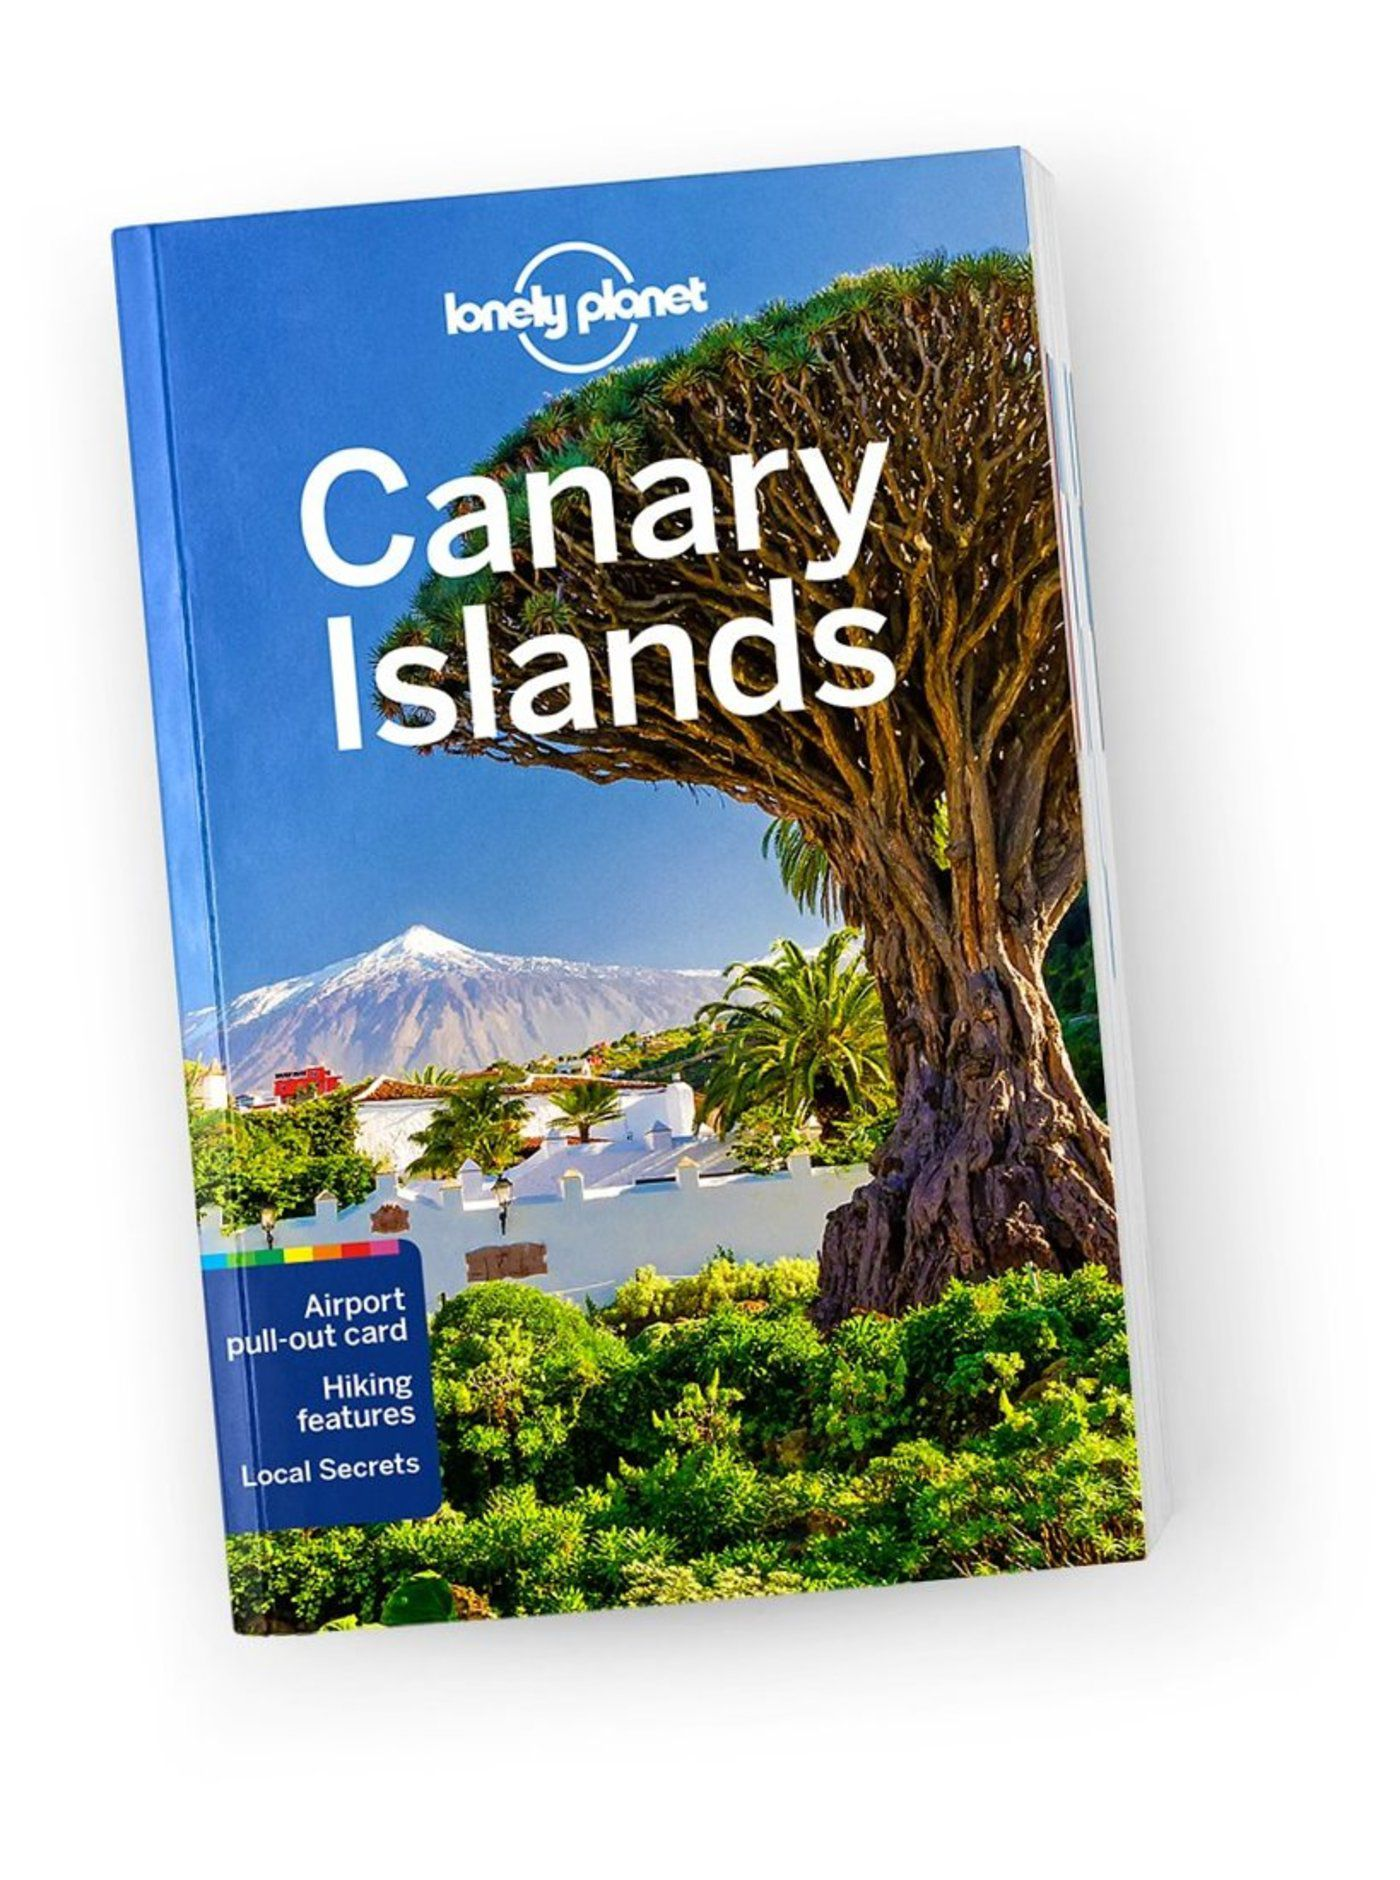 Canary Islands travel guide - 7th edition